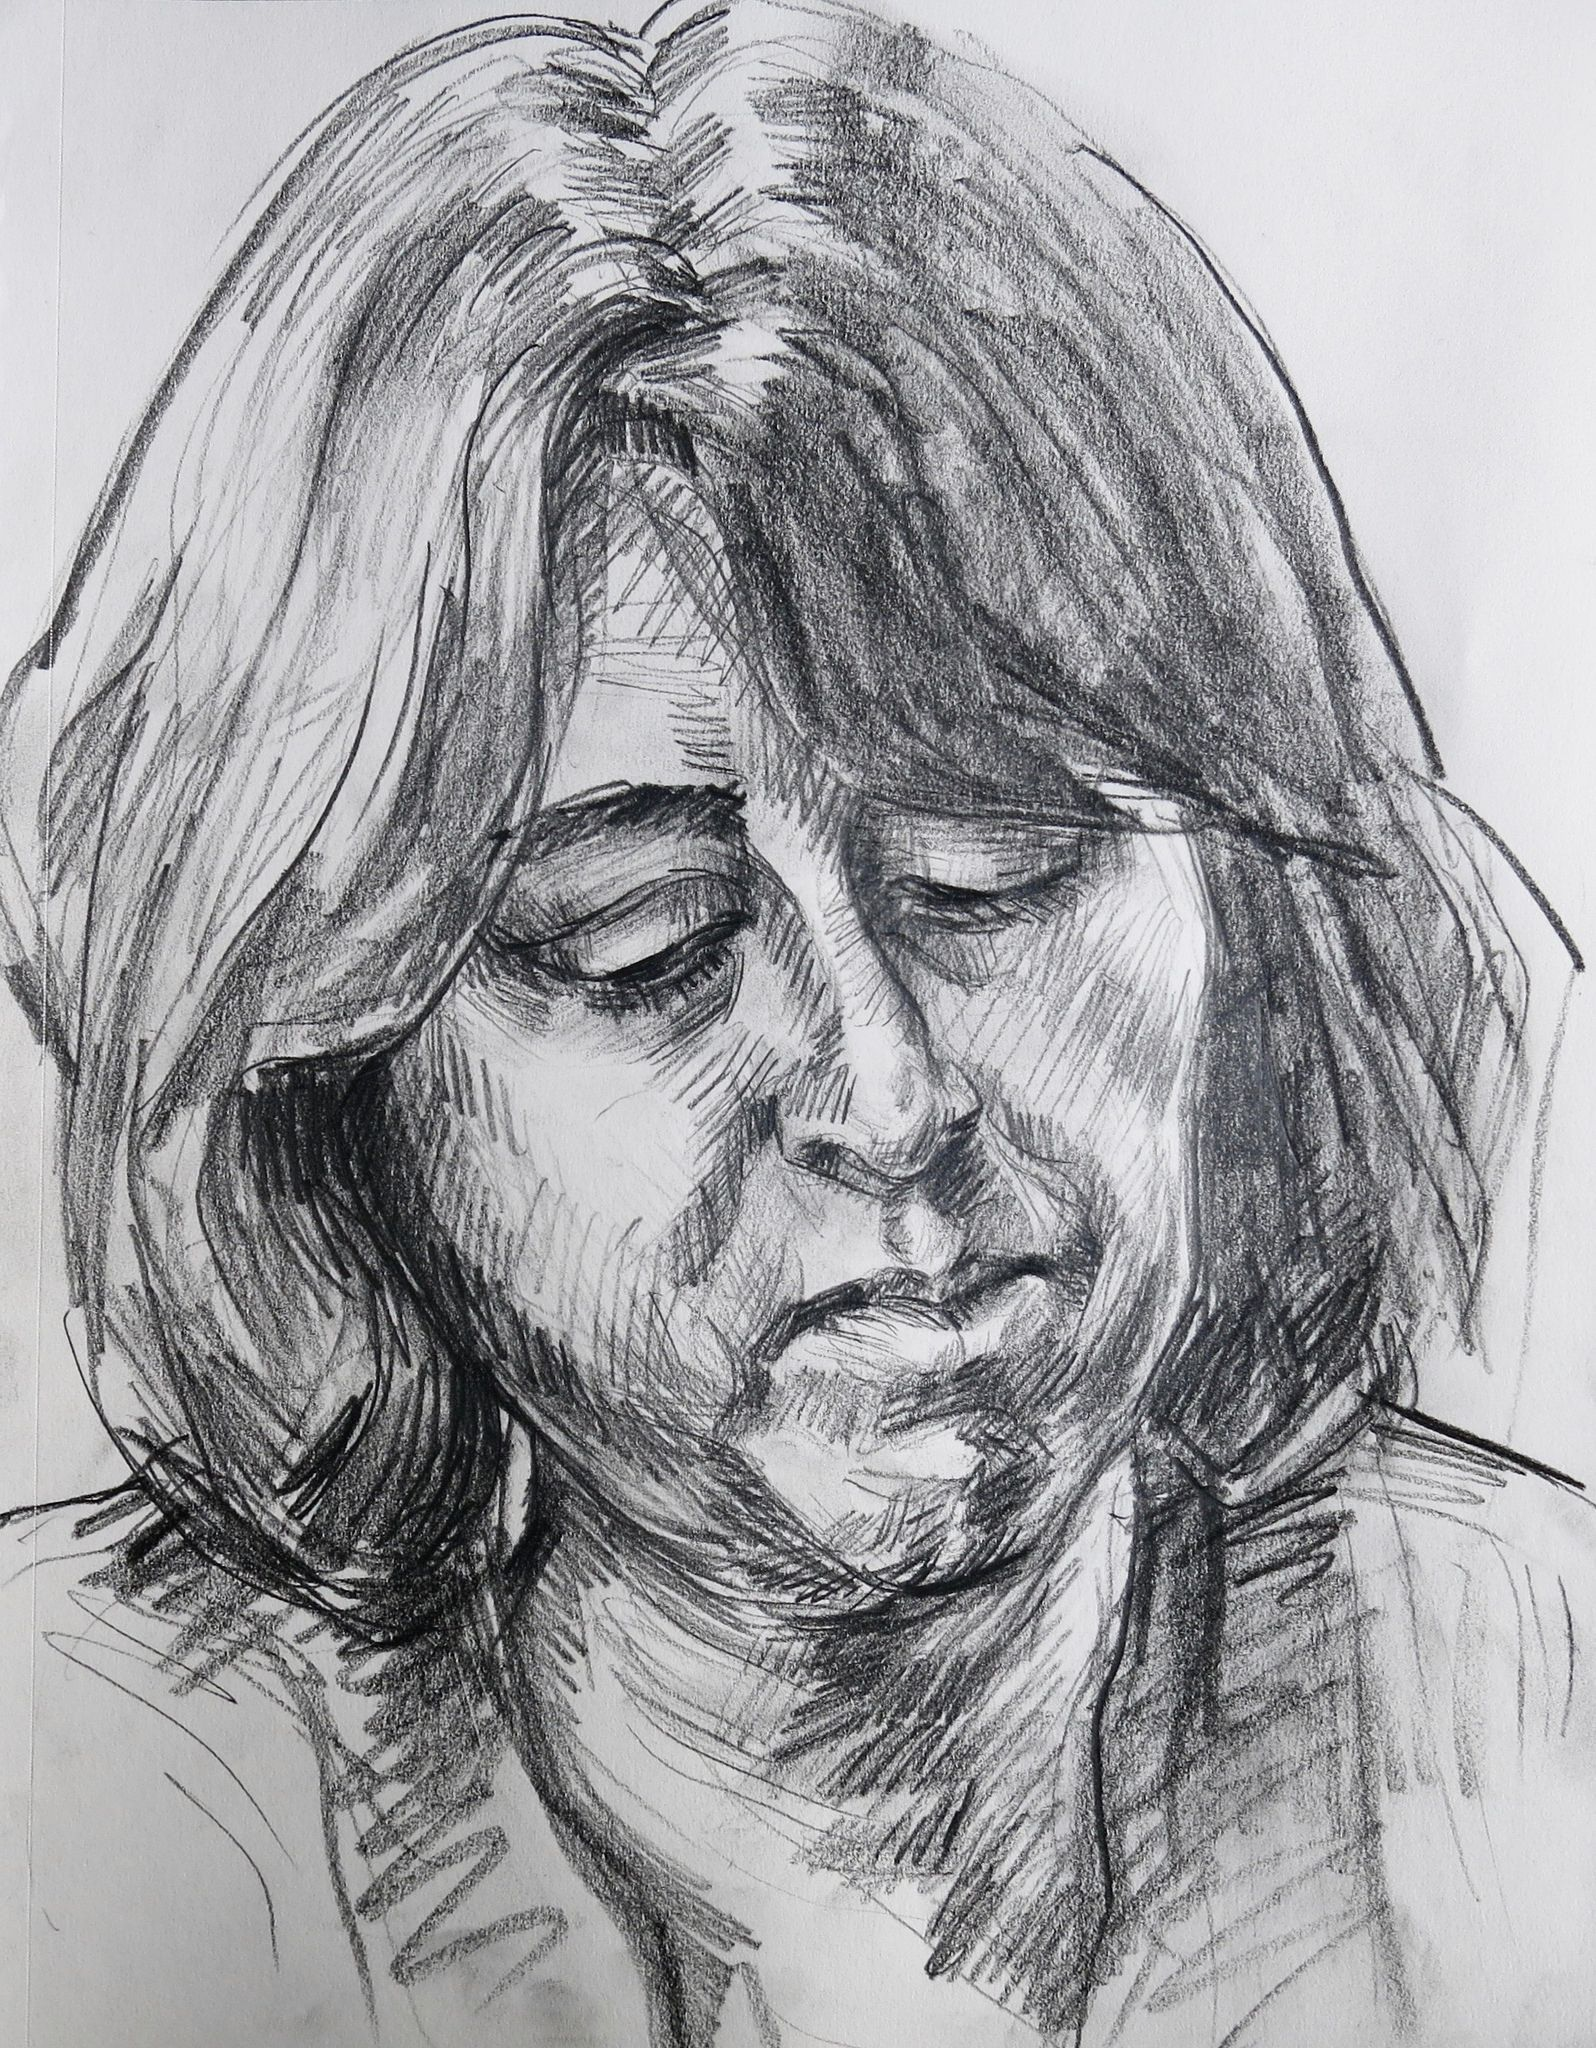 https://flic.kr/p/D6t1v8 | anna black/london2016 | www.flickr.com/groups/portraitparty/discuss/7215766154868...